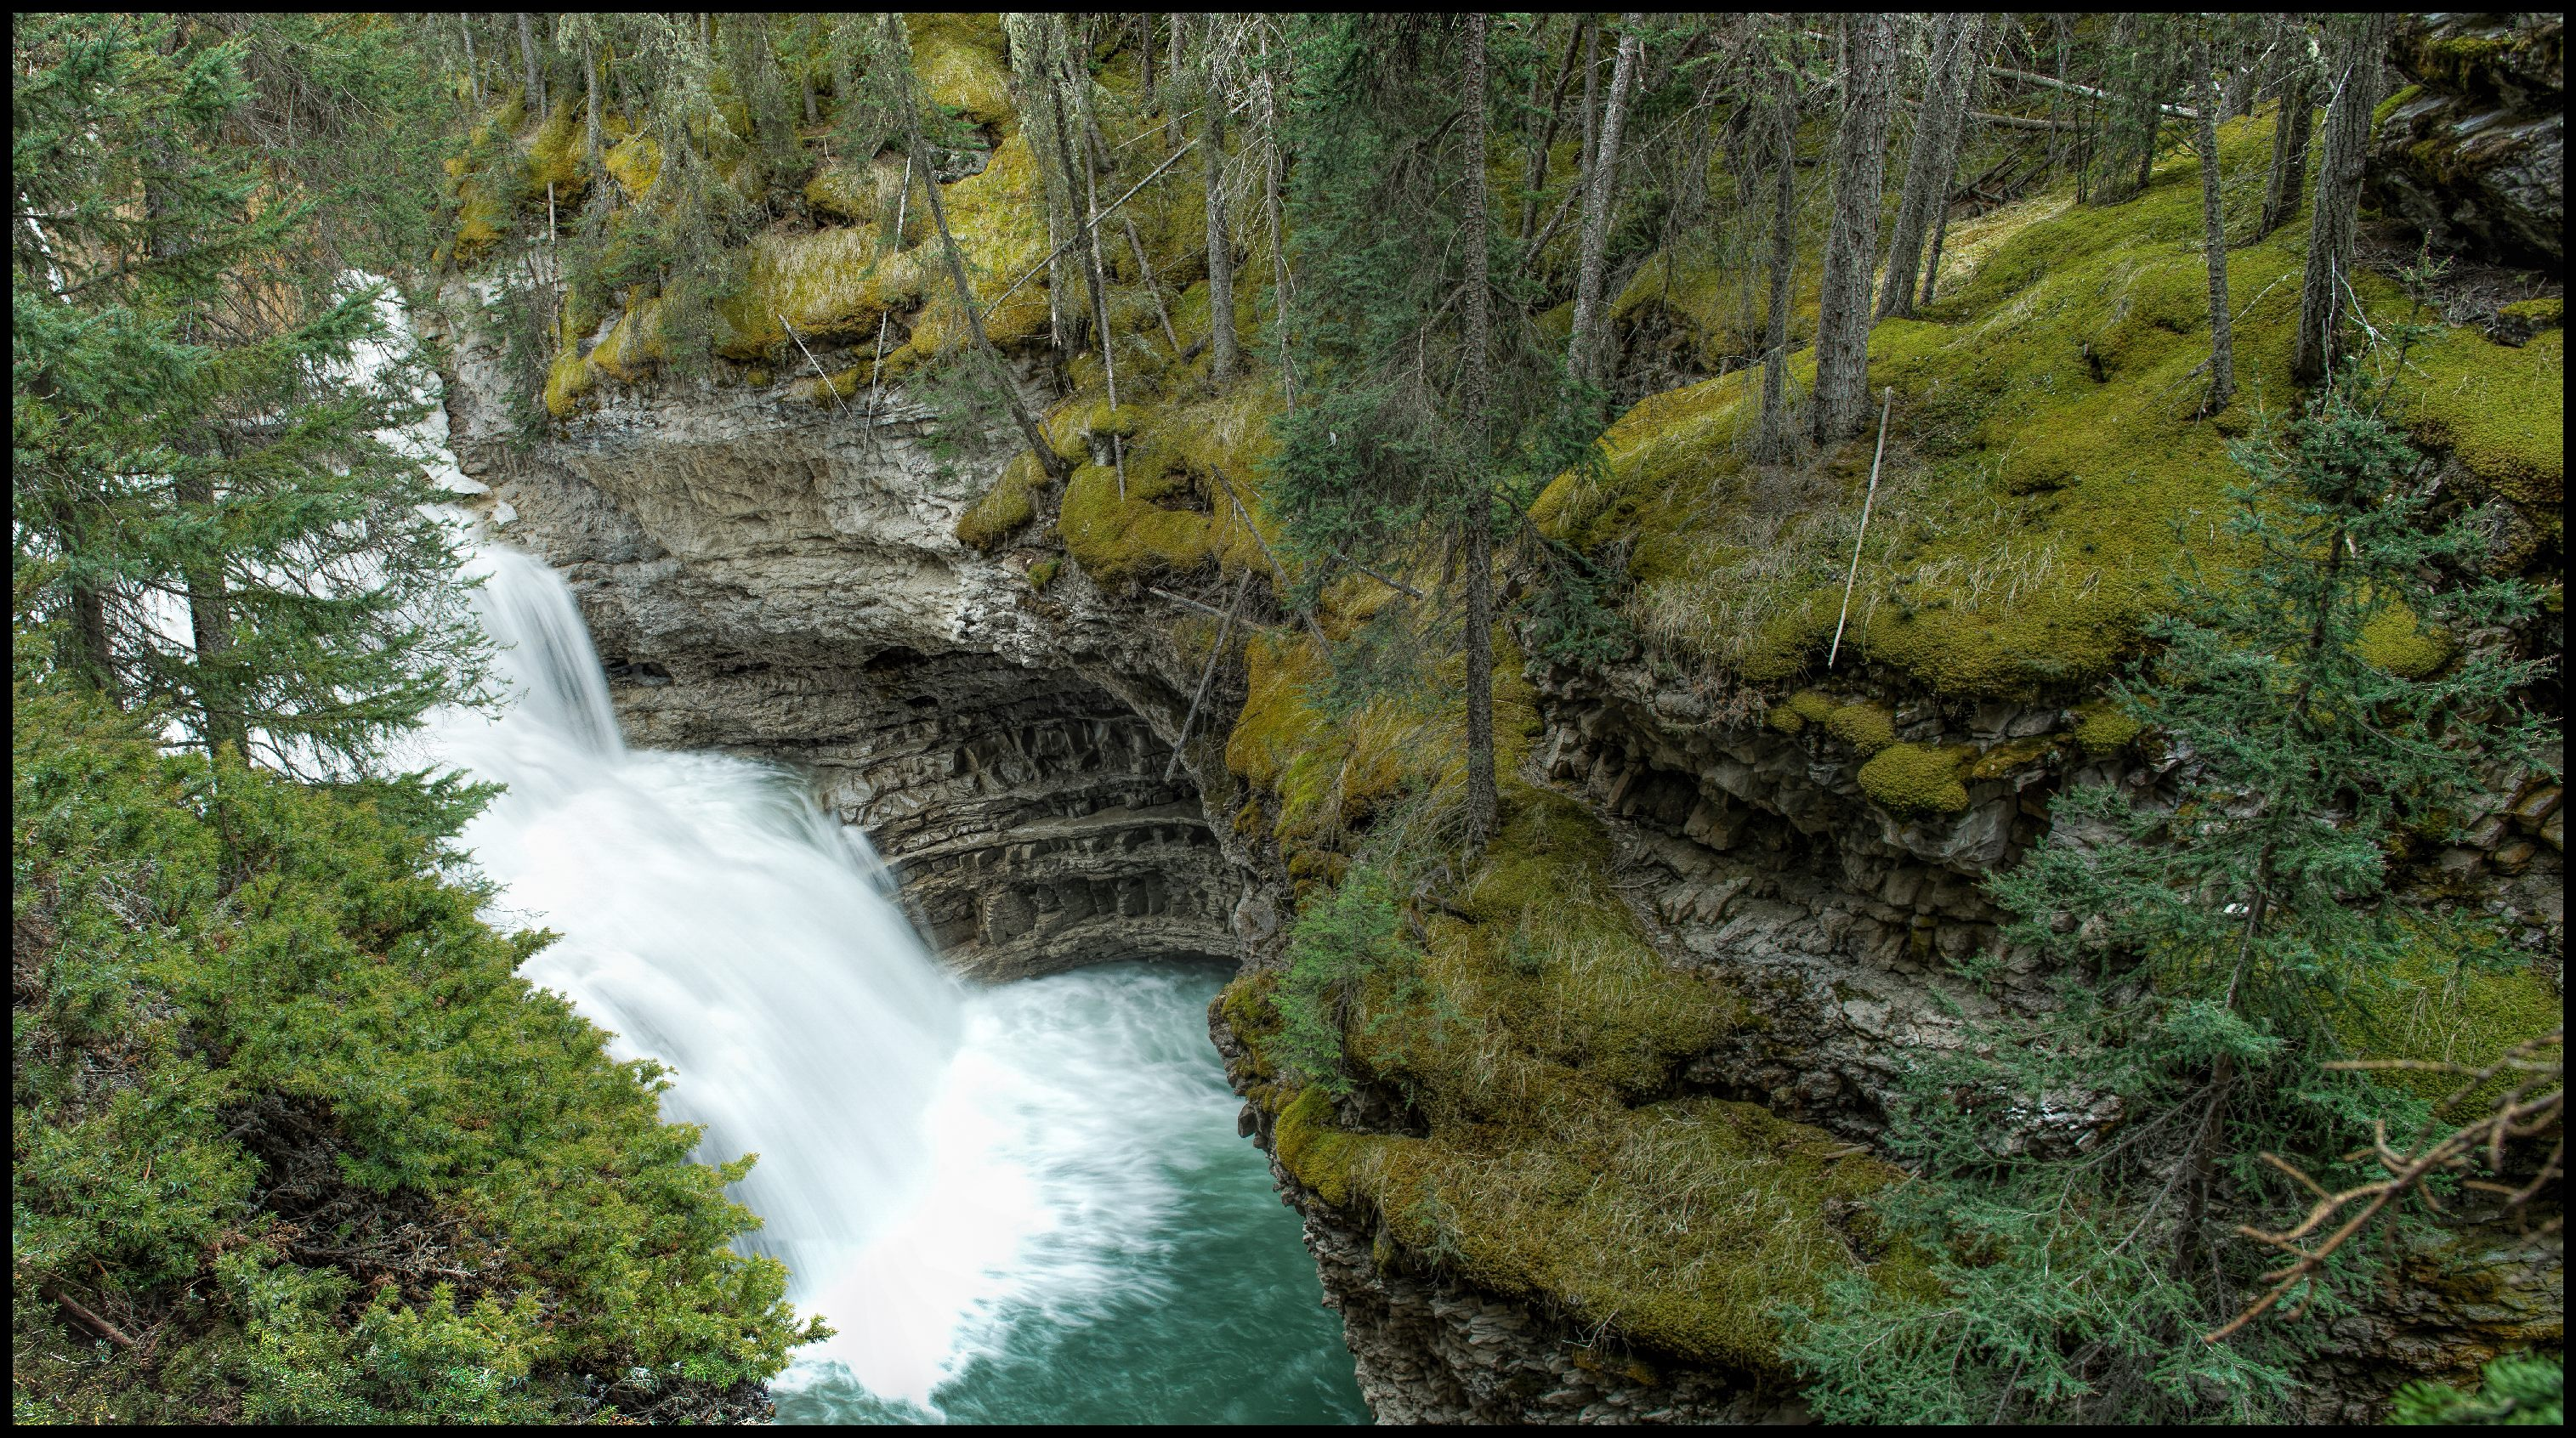 Johnston Canyon Gorge Waterfall Sony A7 / Canon FD Tilt Shift 35 2.8